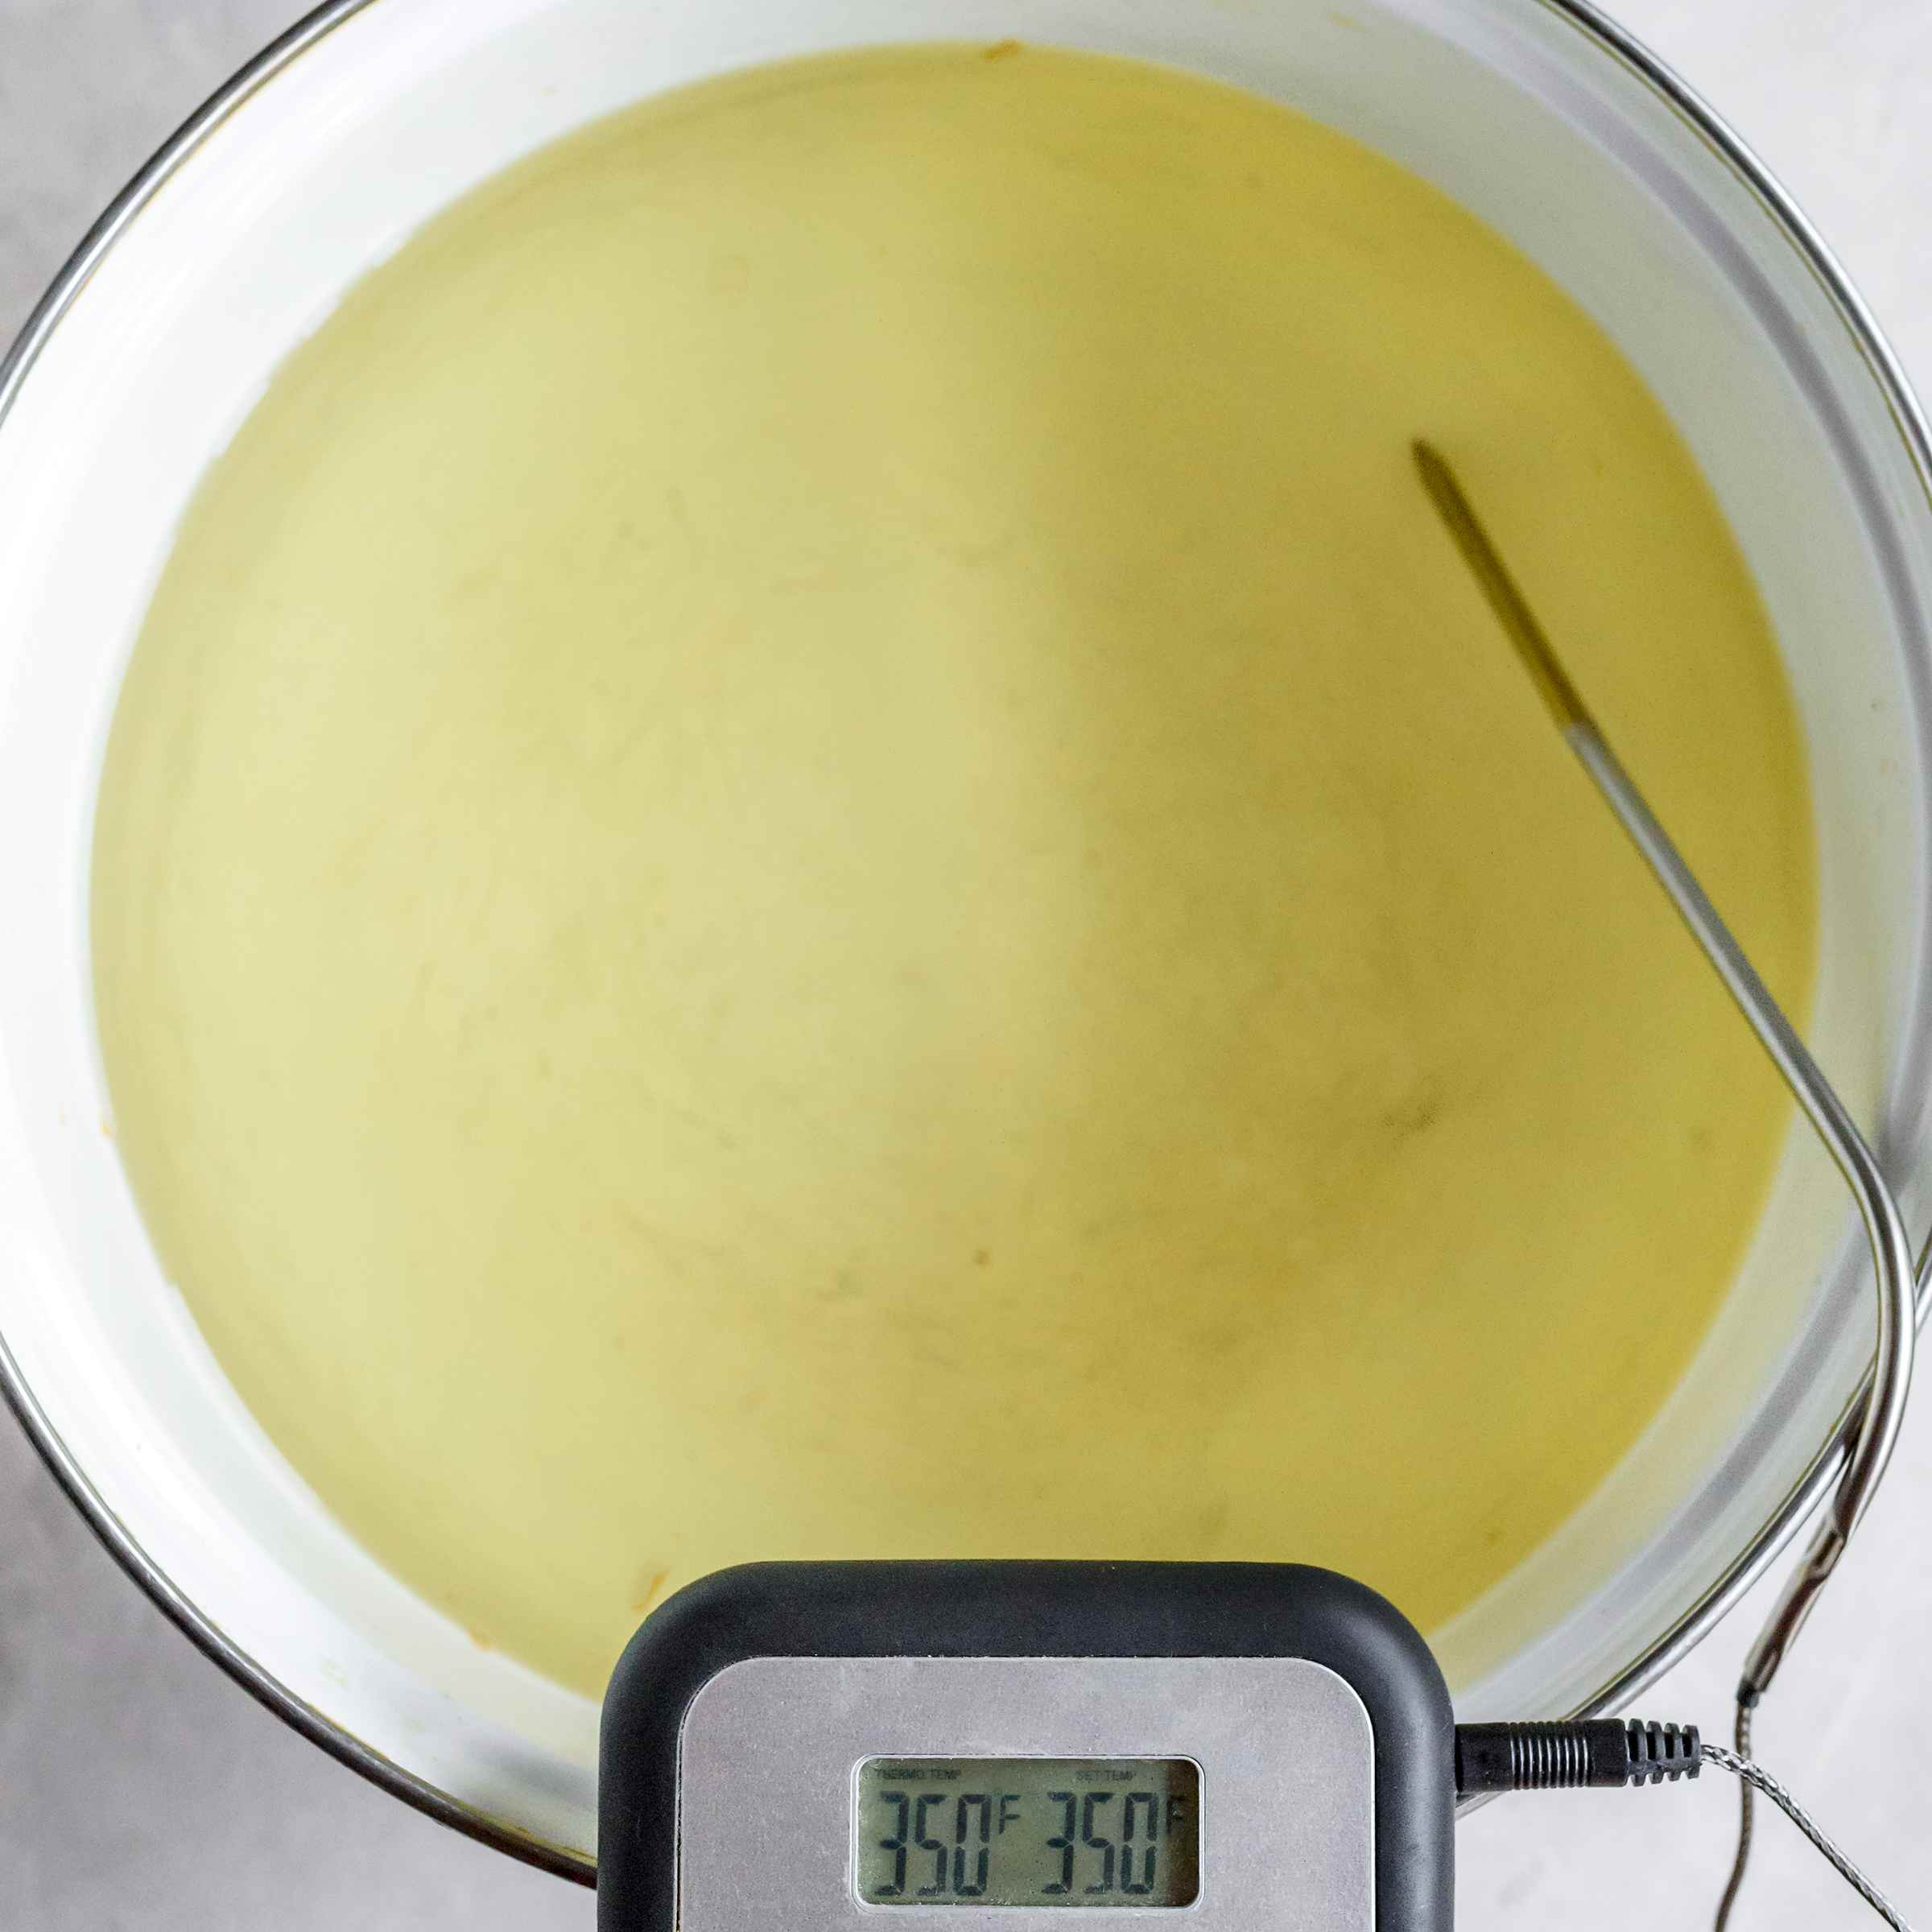 Heated oil in bowl with thermometer reading 350 F